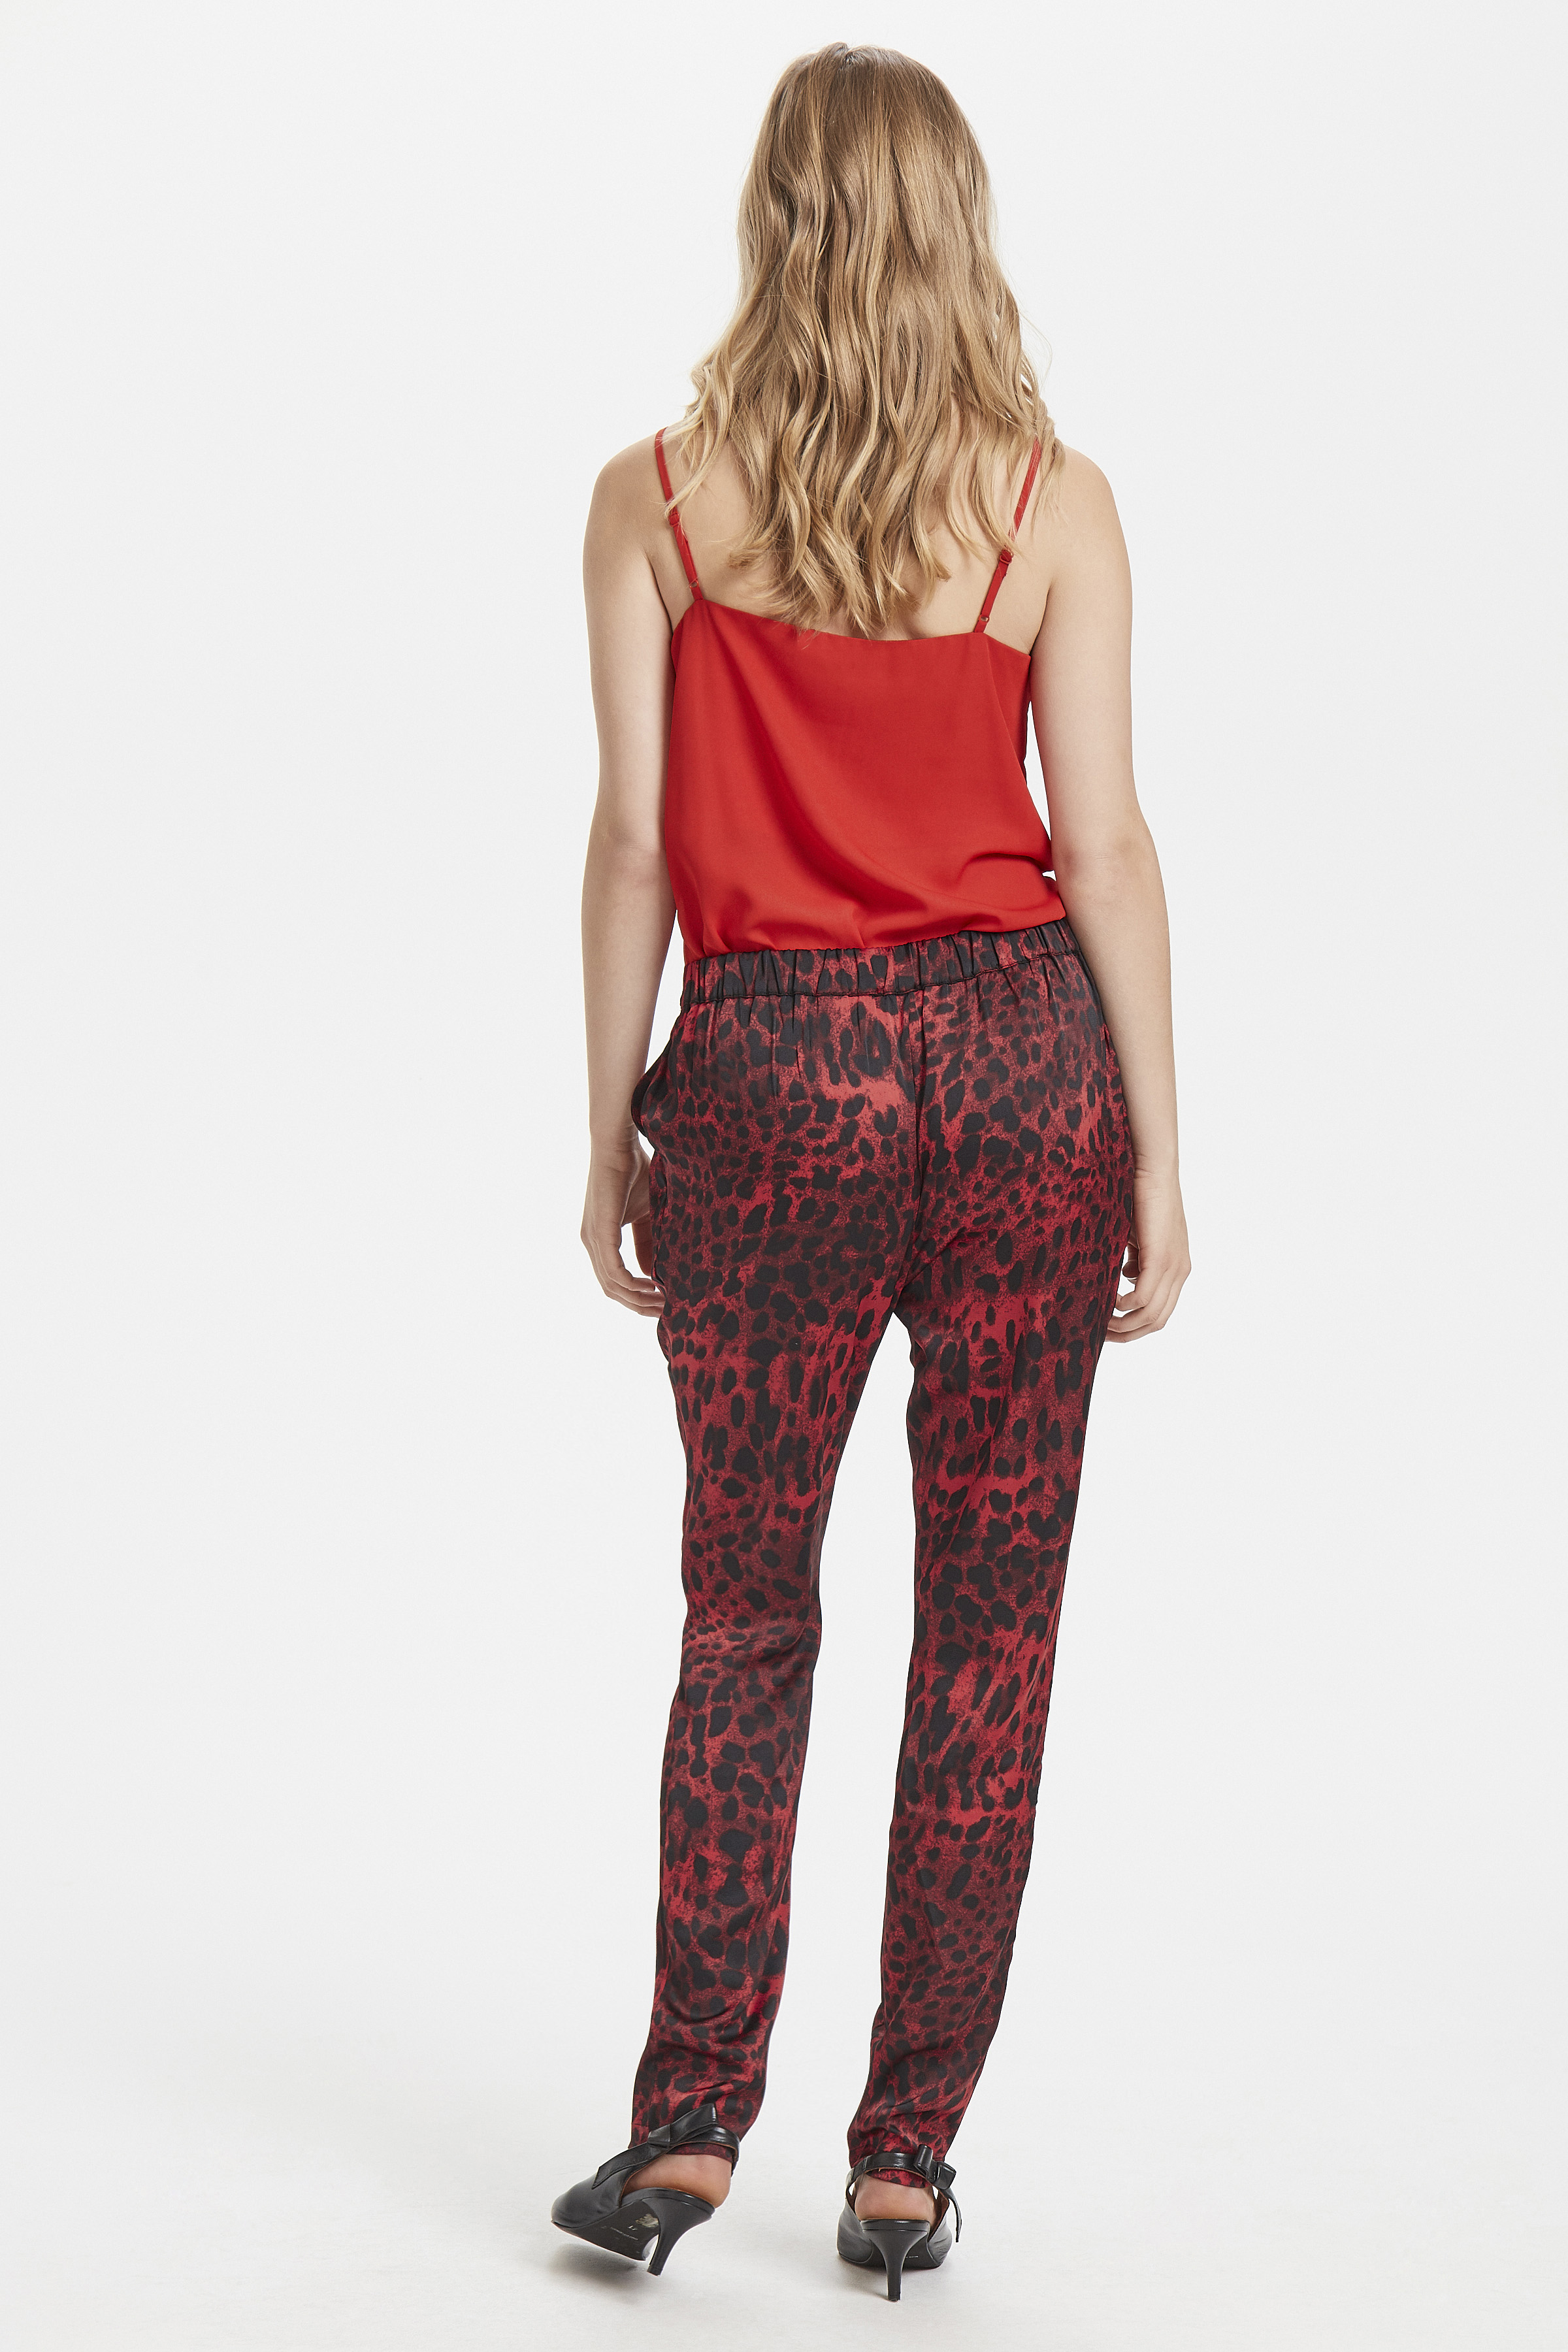 Red combi 2 Pants Casual fra b.young – Køb Red combi 2 Pants Casual fra str. 34-42 her